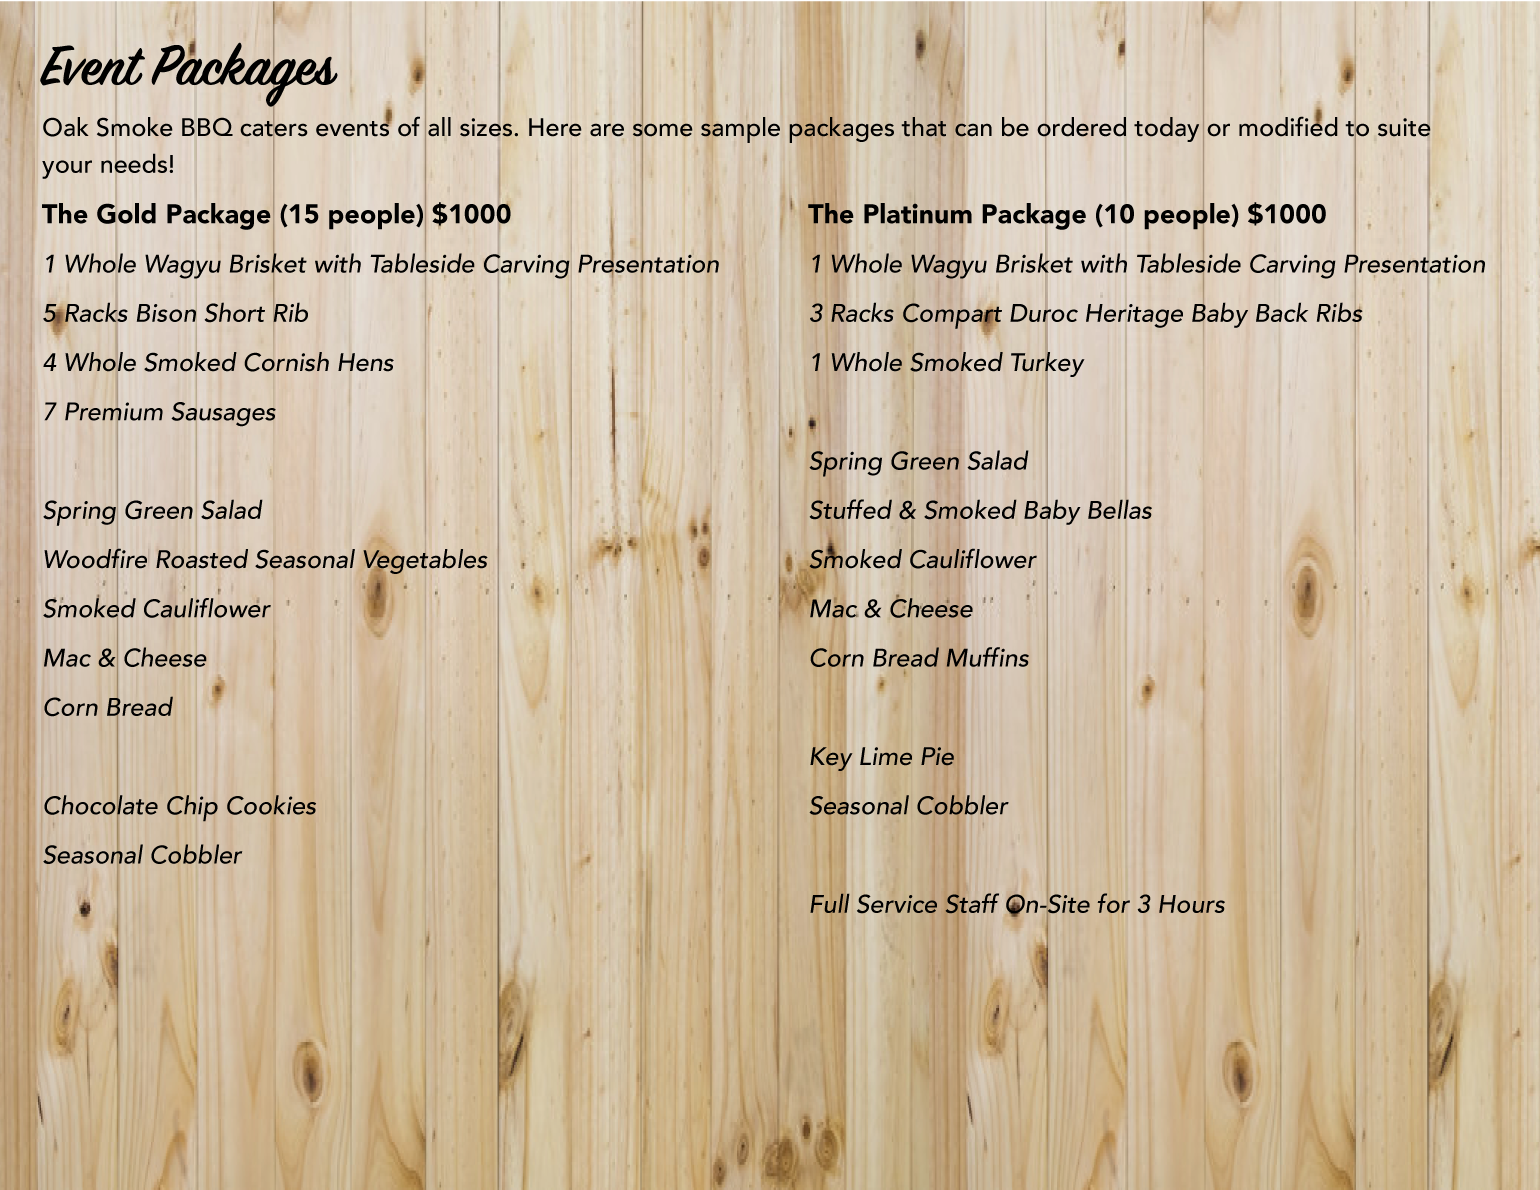 CATERING-GUIDE-PACKAGES-2.png